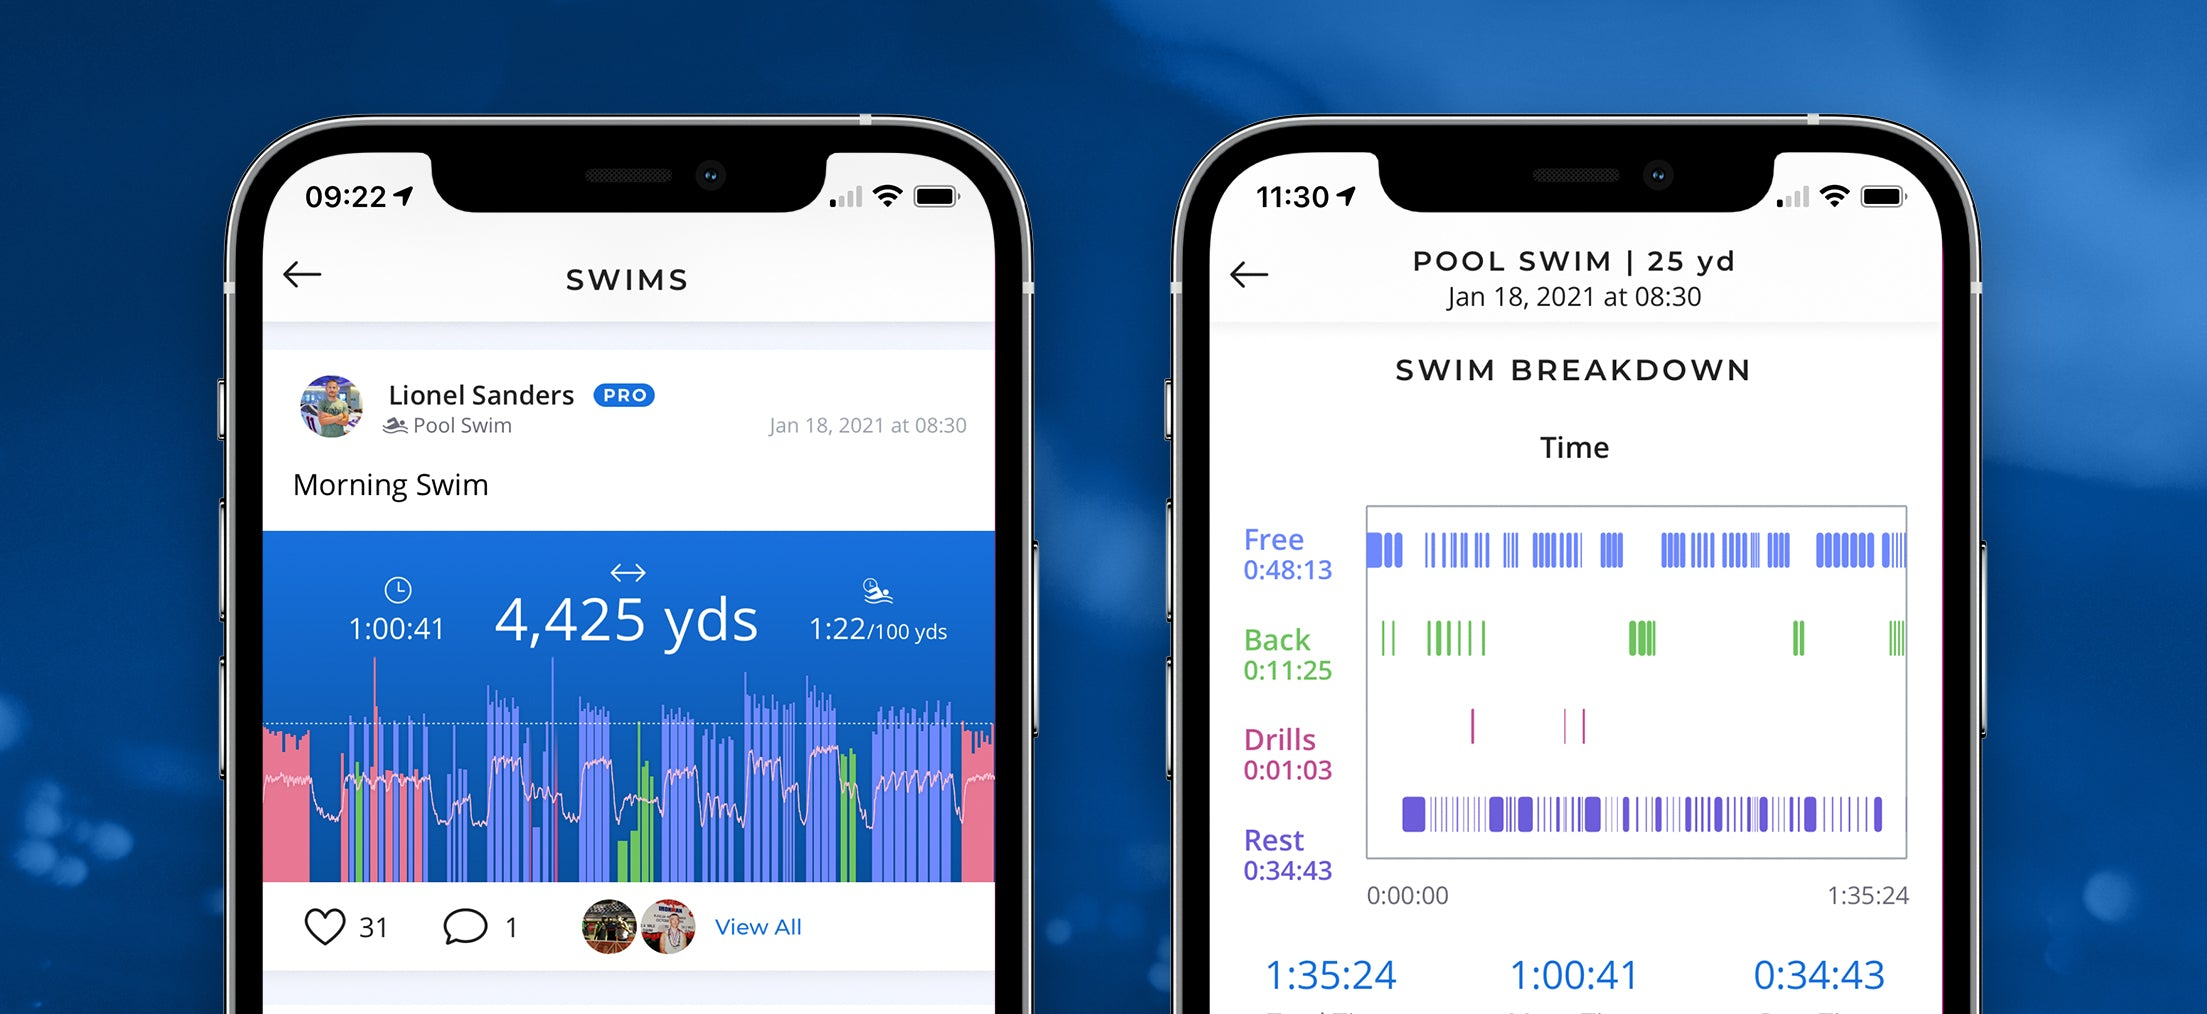 See your workout details on with your smartphone with FORM swim goggles.